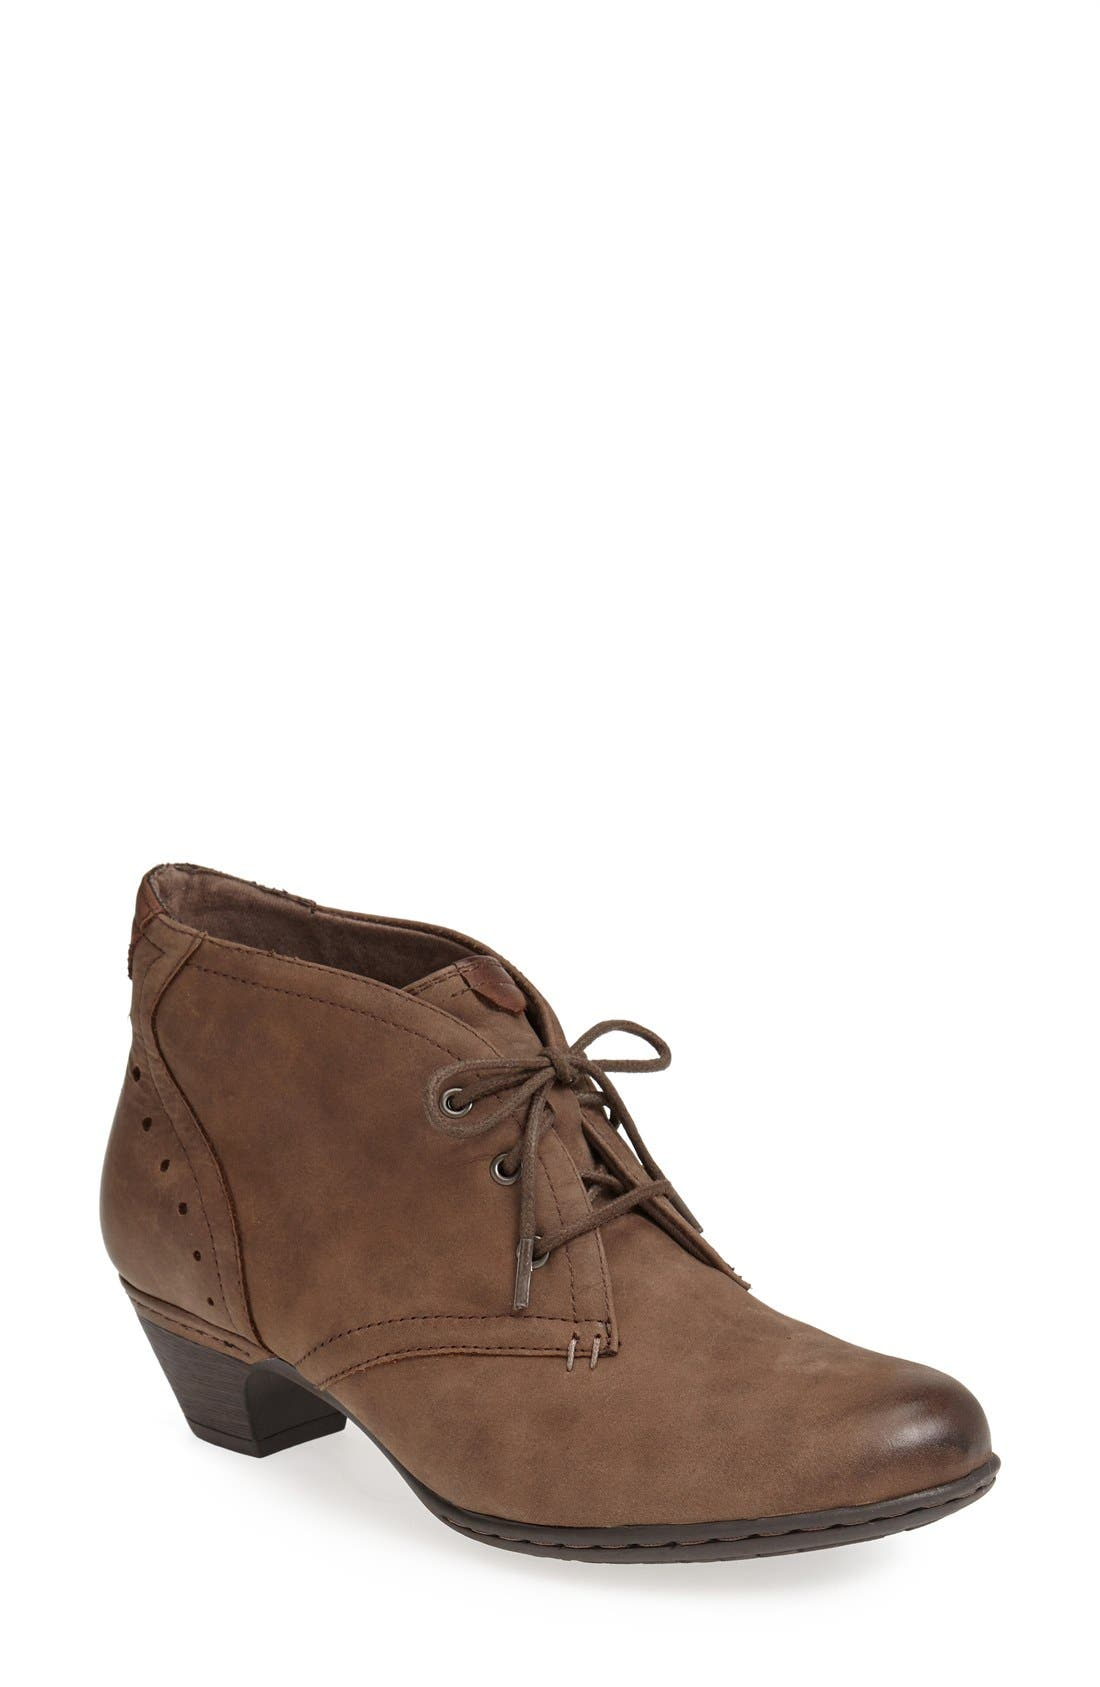 ROCKPORT COBB HILL, Aria Leather Boot, Main thumbnail 1, color, STONE